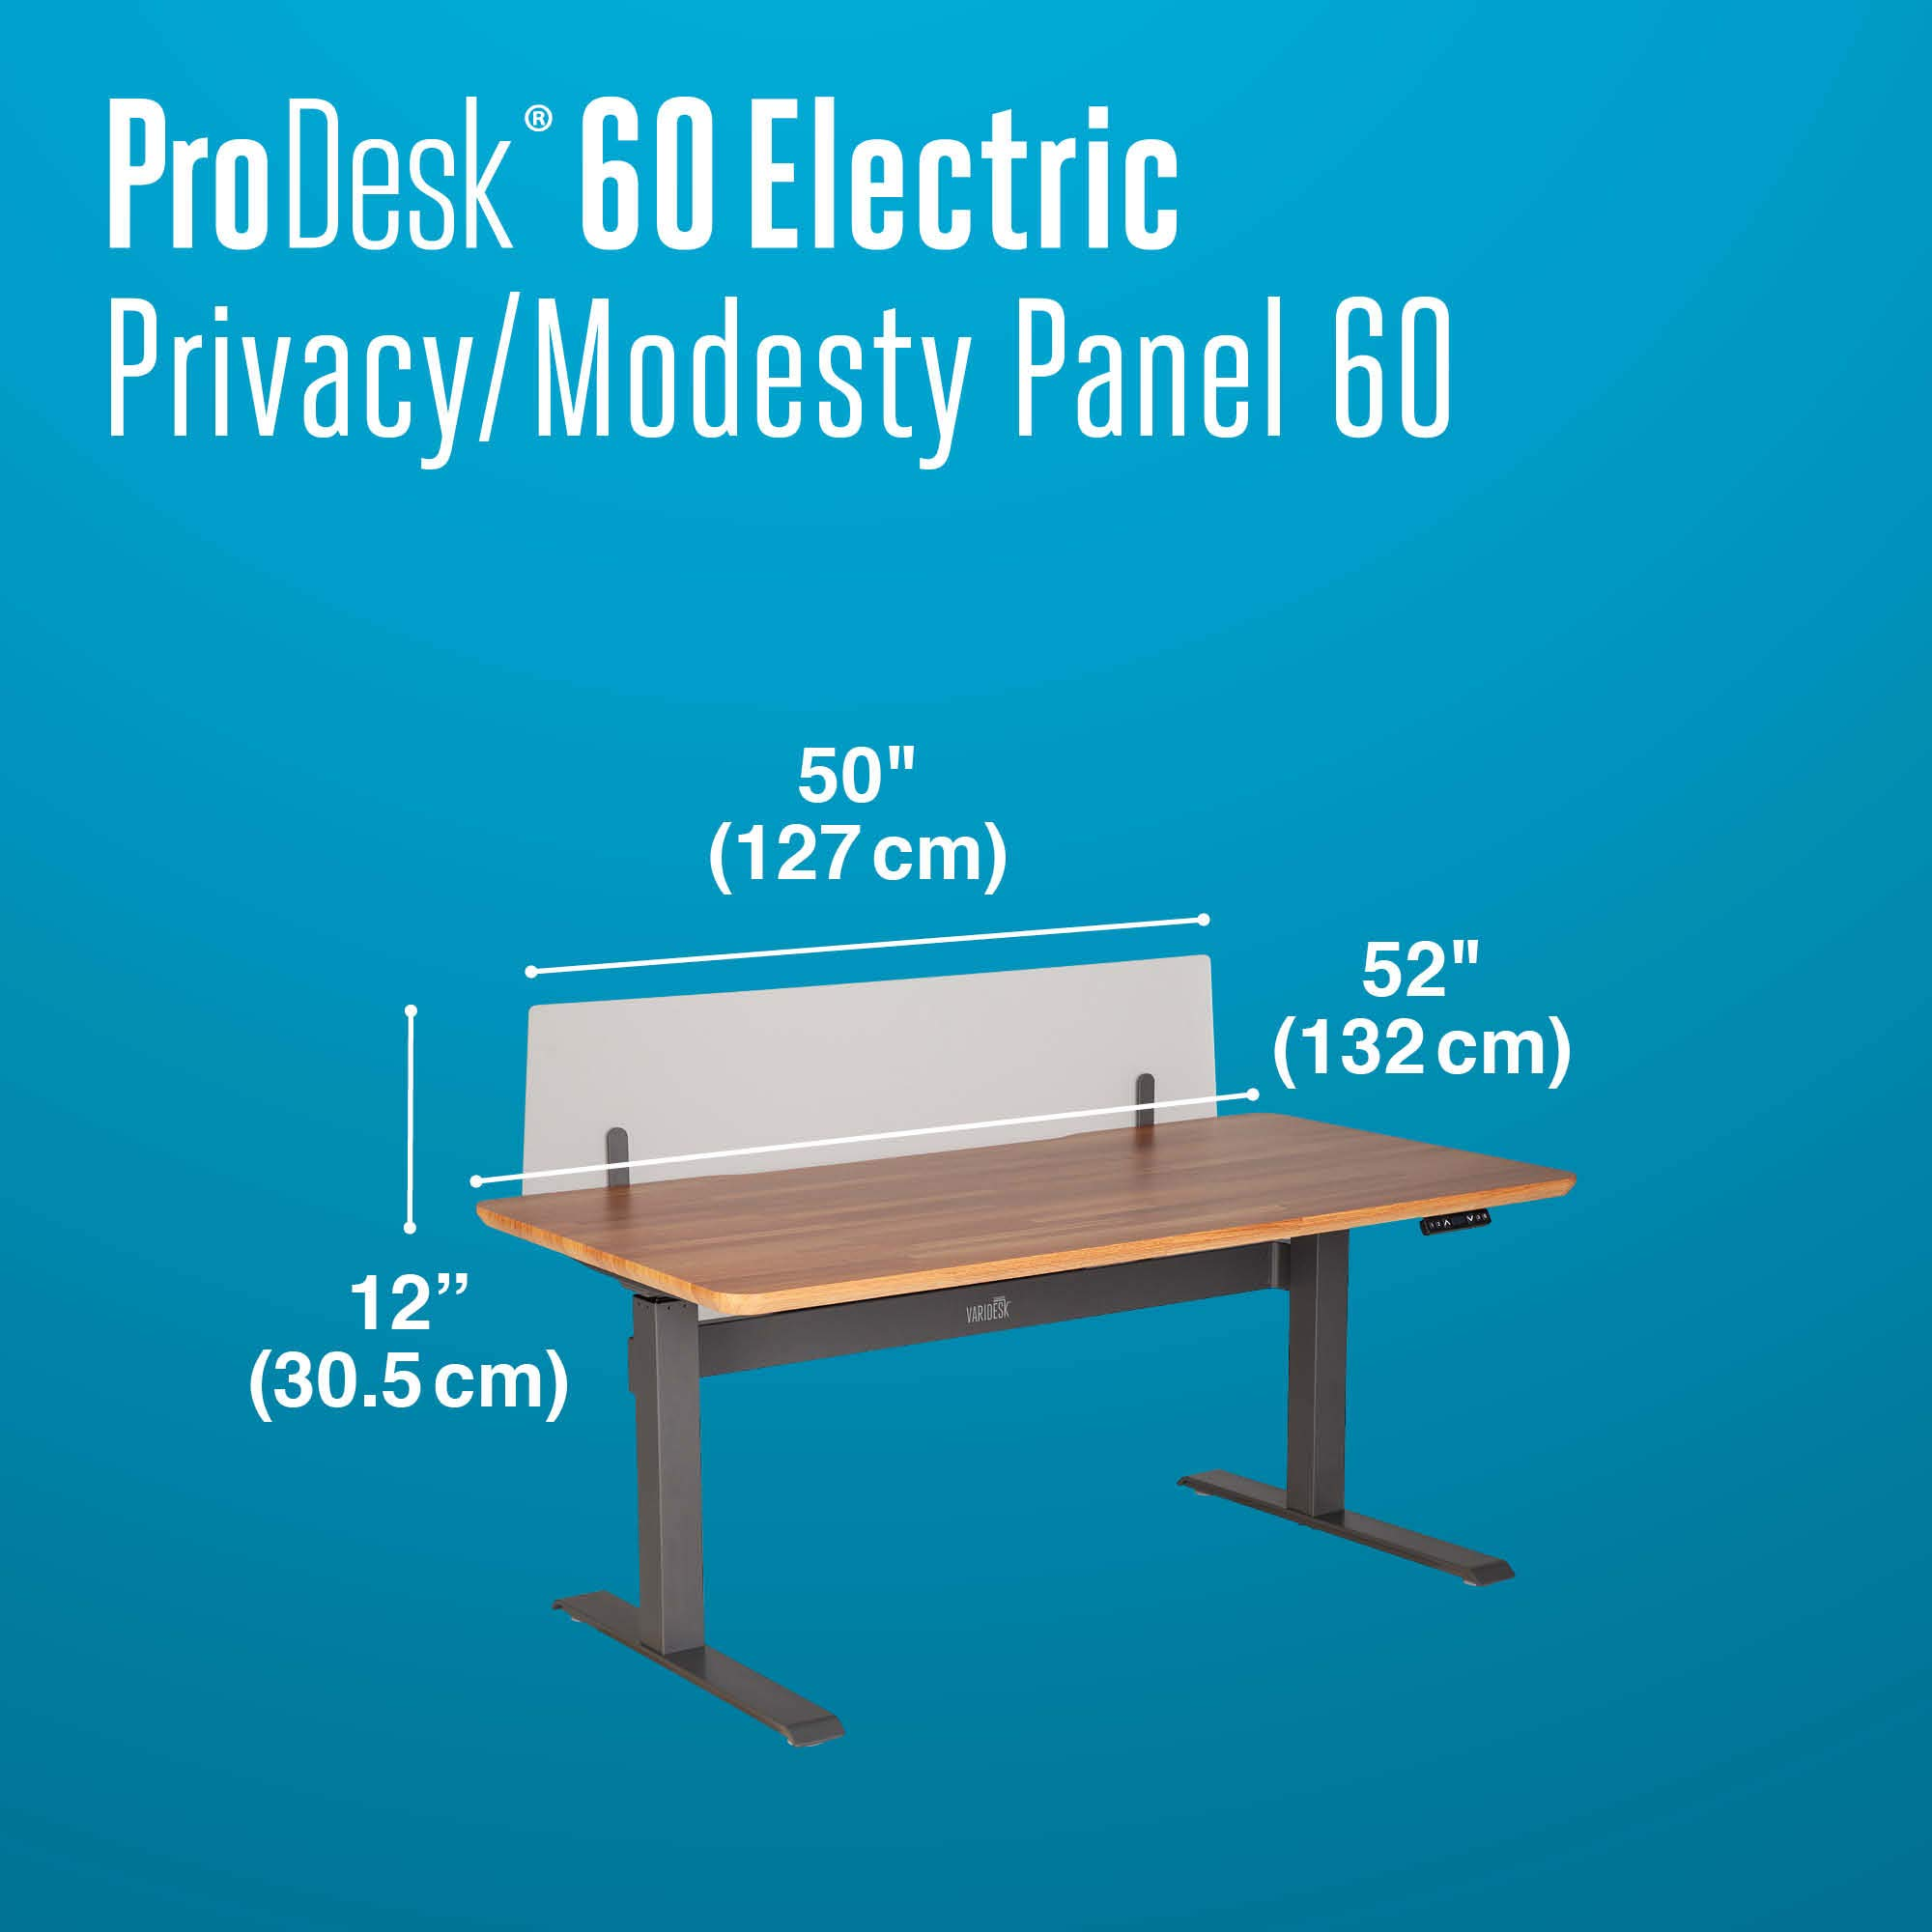 VARIDESK - ProDesk Electric Privacy and Modesty Panel 60 - Office Partition by VARIDESK (Image #9)